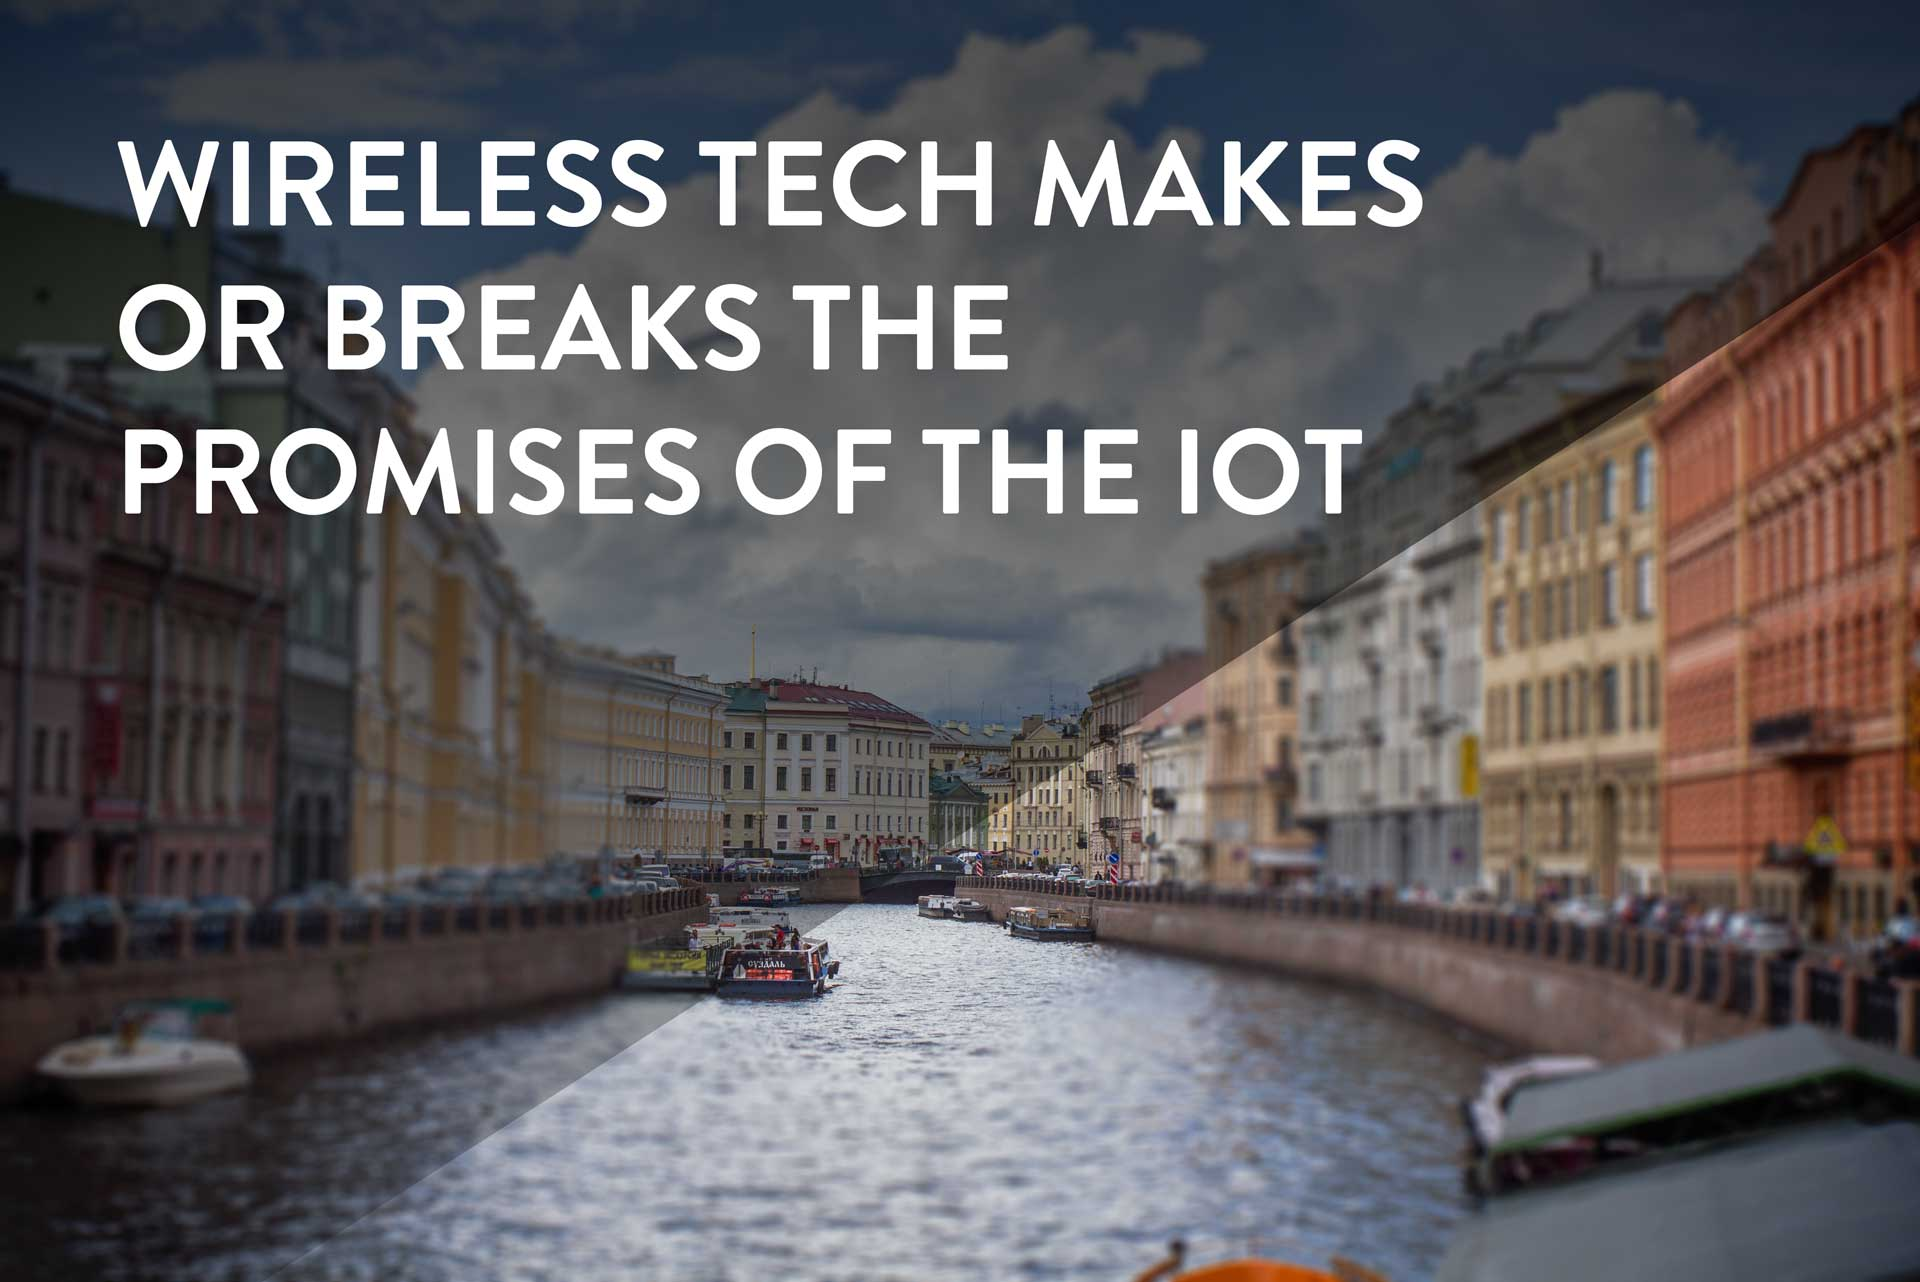 wireless tech makes or breaks the internet of things